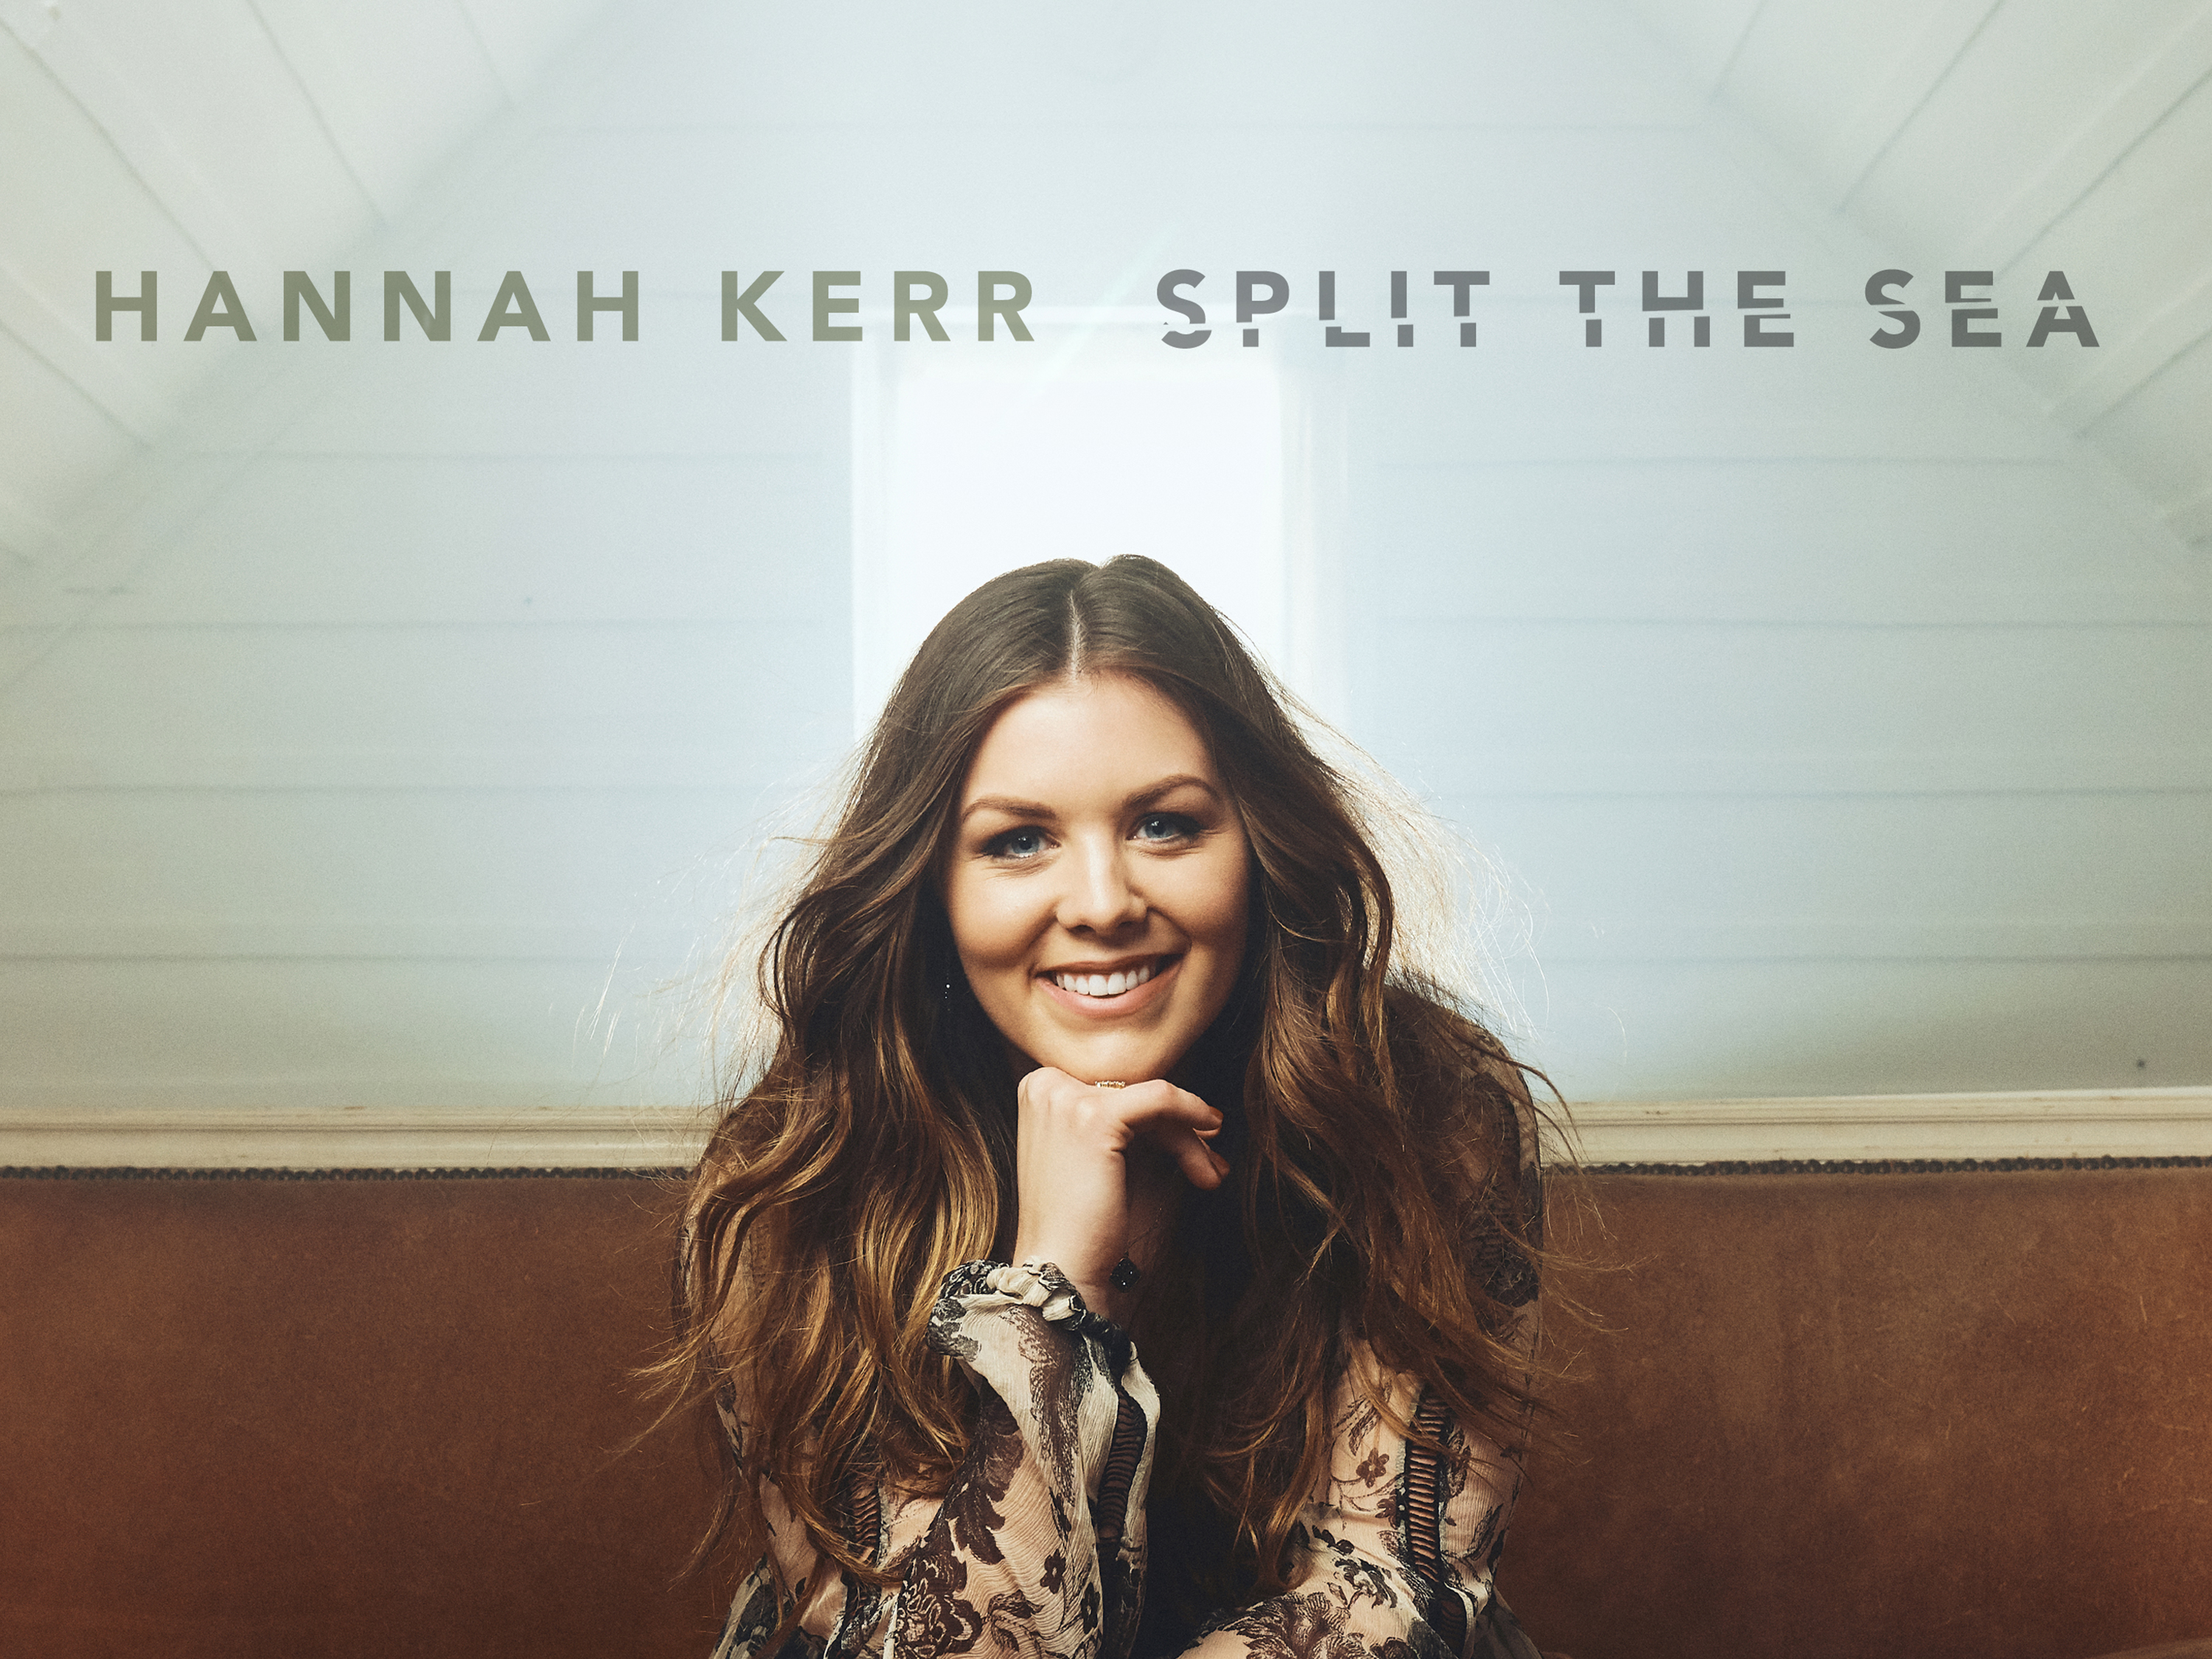 HANNAH KERR IMPACTS RADIO WITH NEW SINGLE SPLIT THE SEA